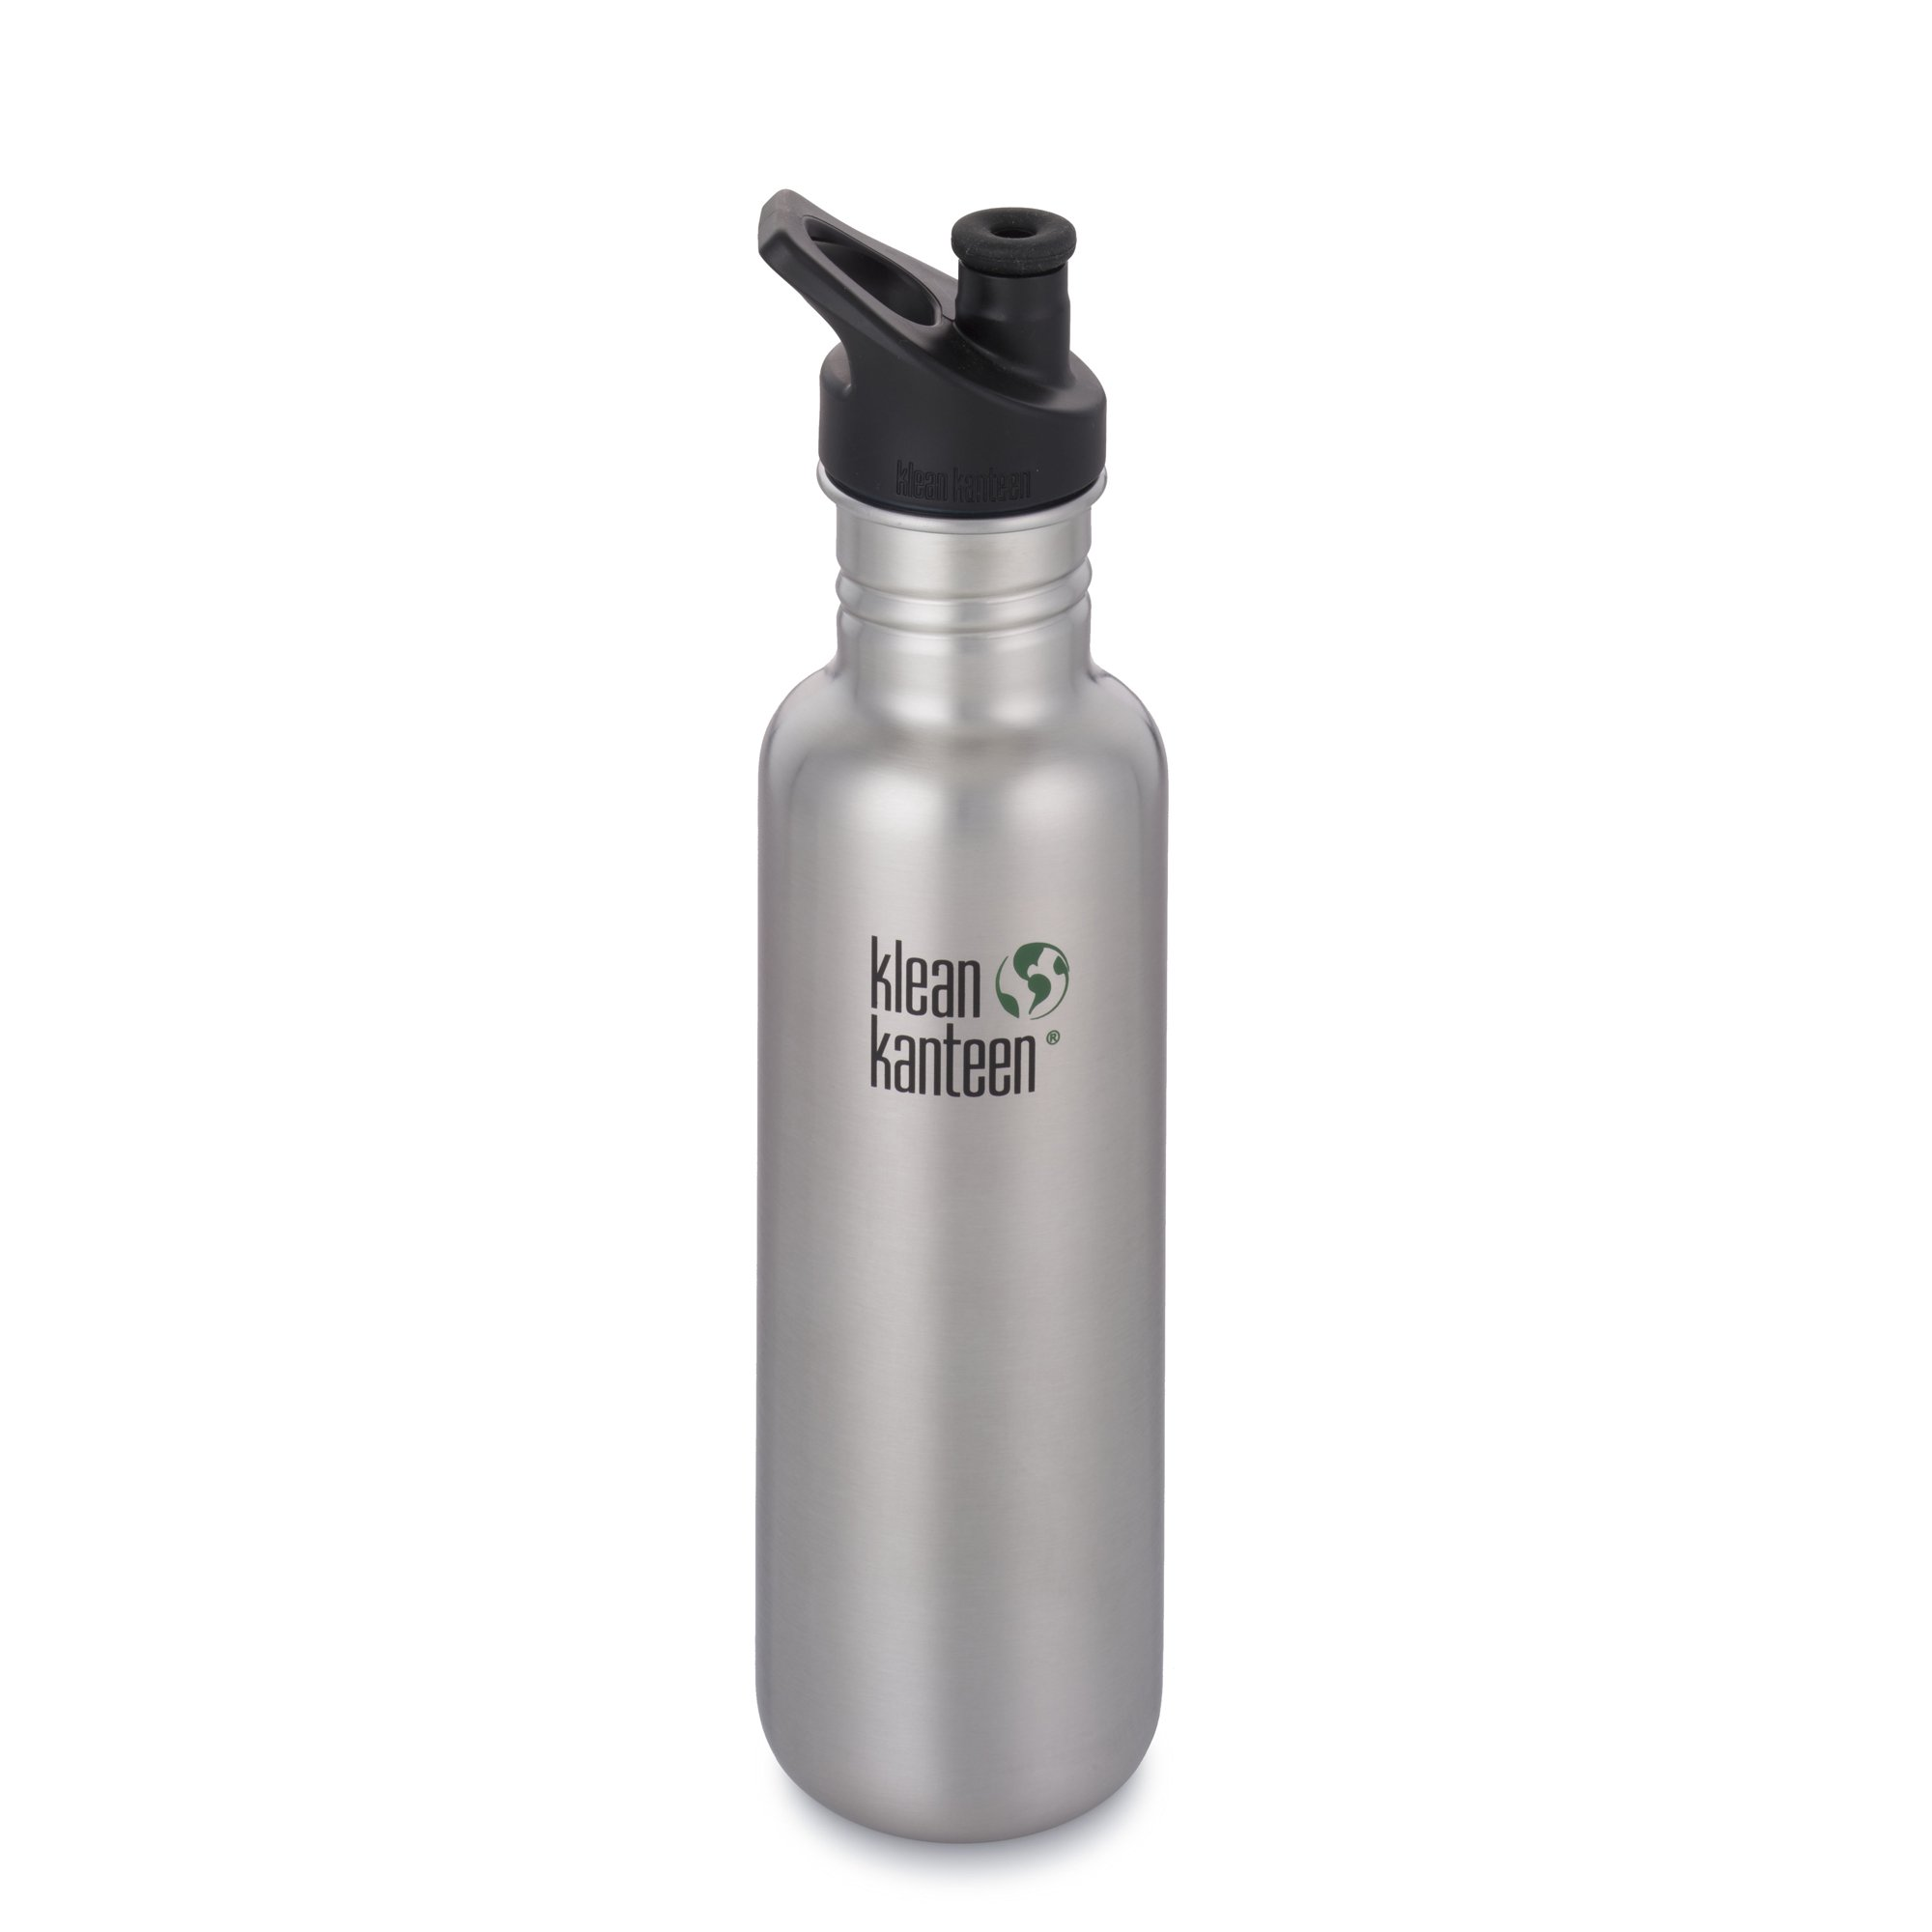 Klean Kanteen Classic Stainless Steel Bottle with Sport Cap, Brushed Stainless - 27oz